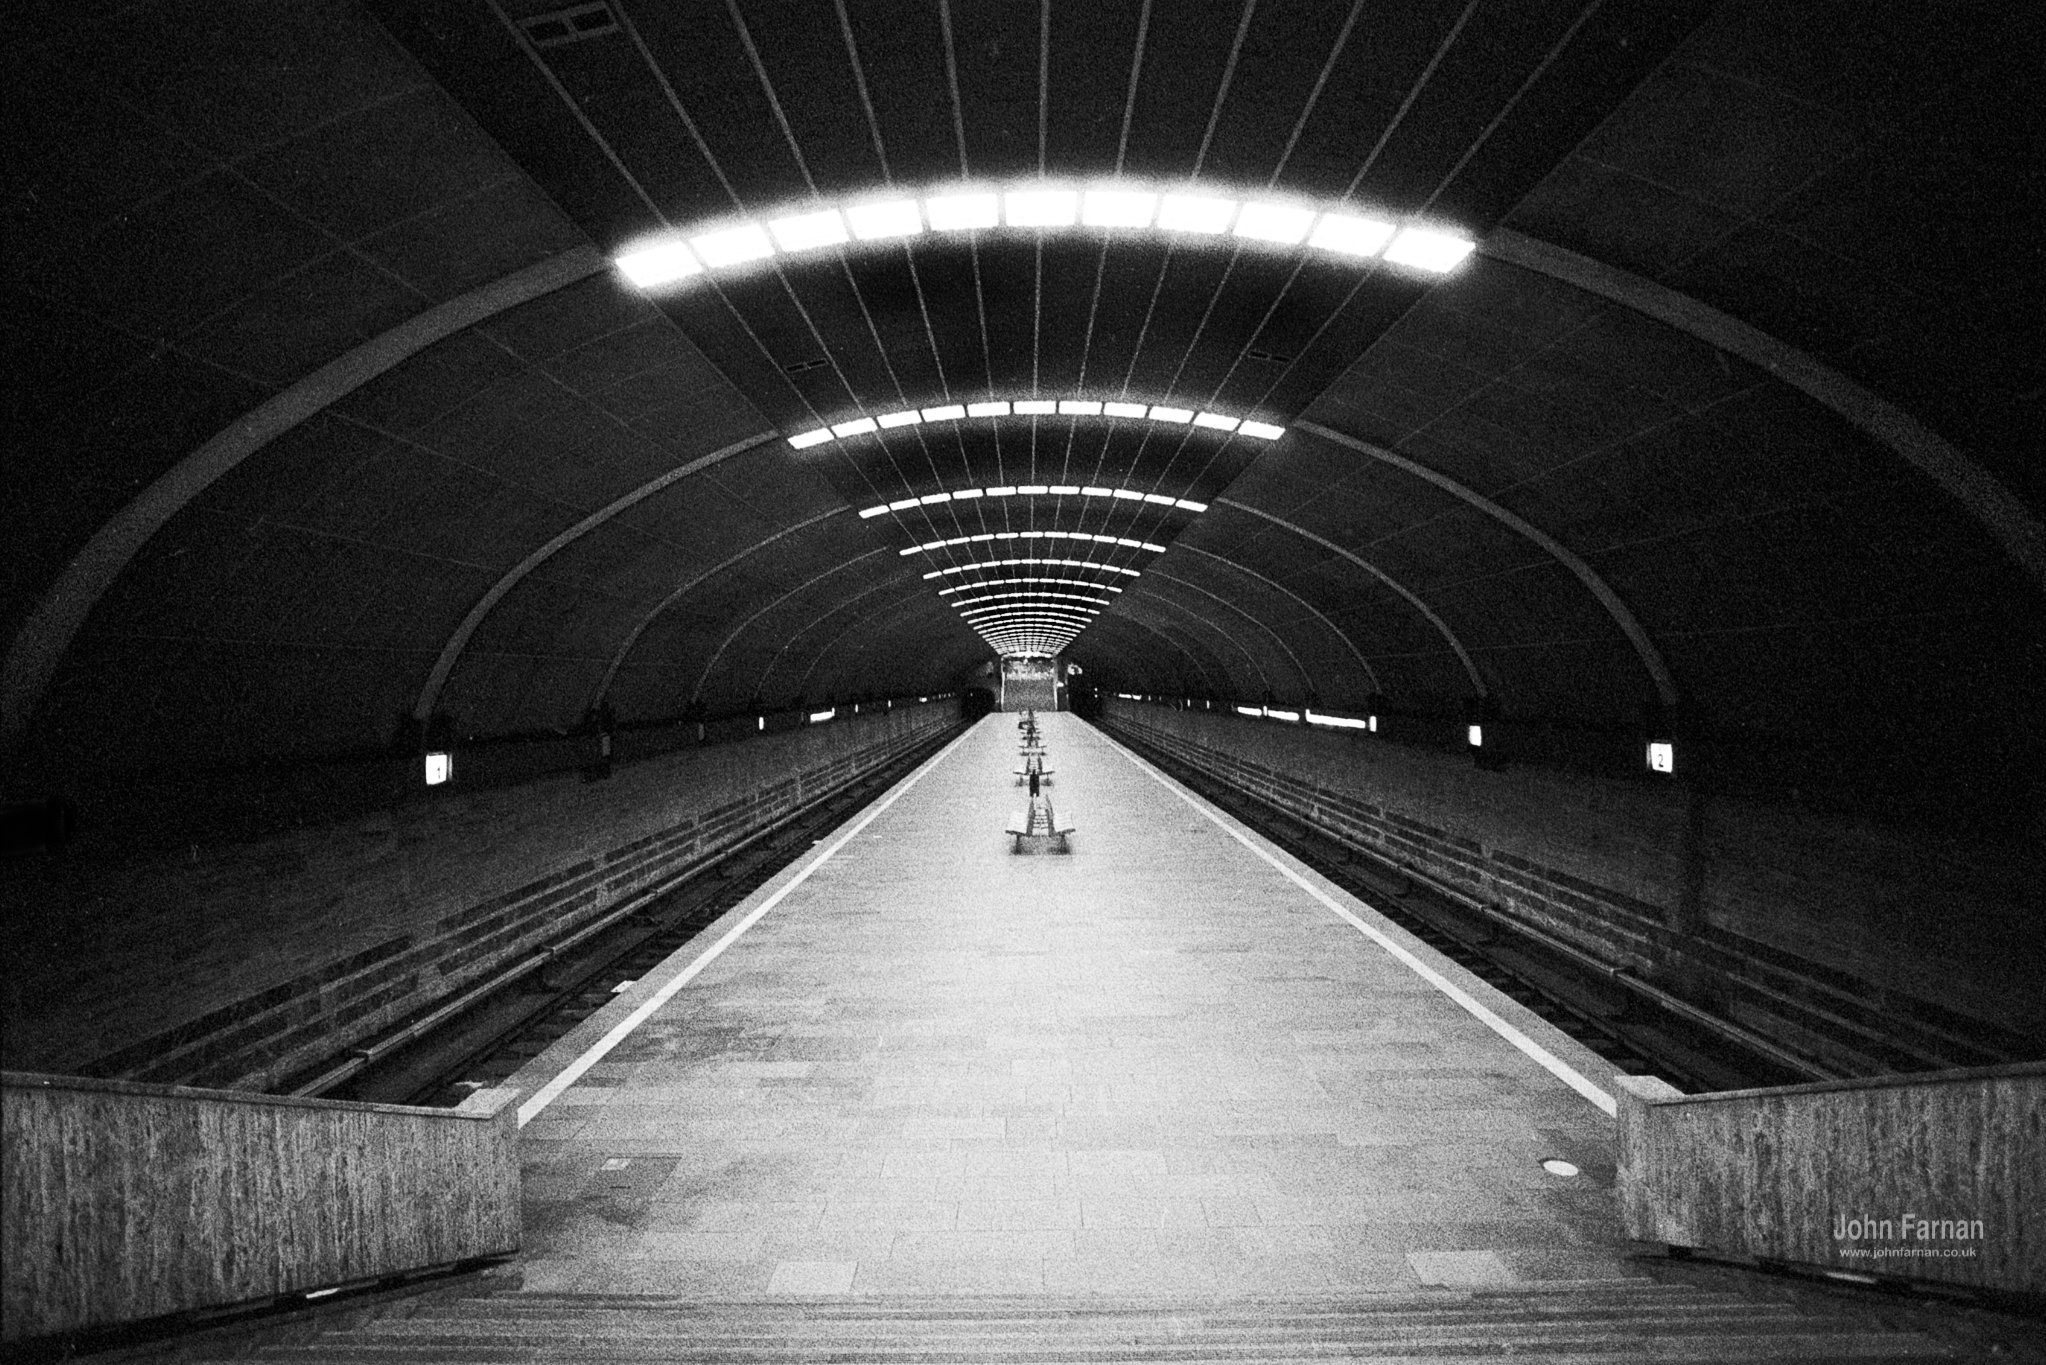 @johnfphotos · Oct 3 Here's one of my faves for the @ILFORDPhoto #fridayfavourites this week #ilfordphoto #patterns It's Titan metro station Bucharest shot handheld on #delta3200 at 1600 patterns are everywhere when you look for them 😍